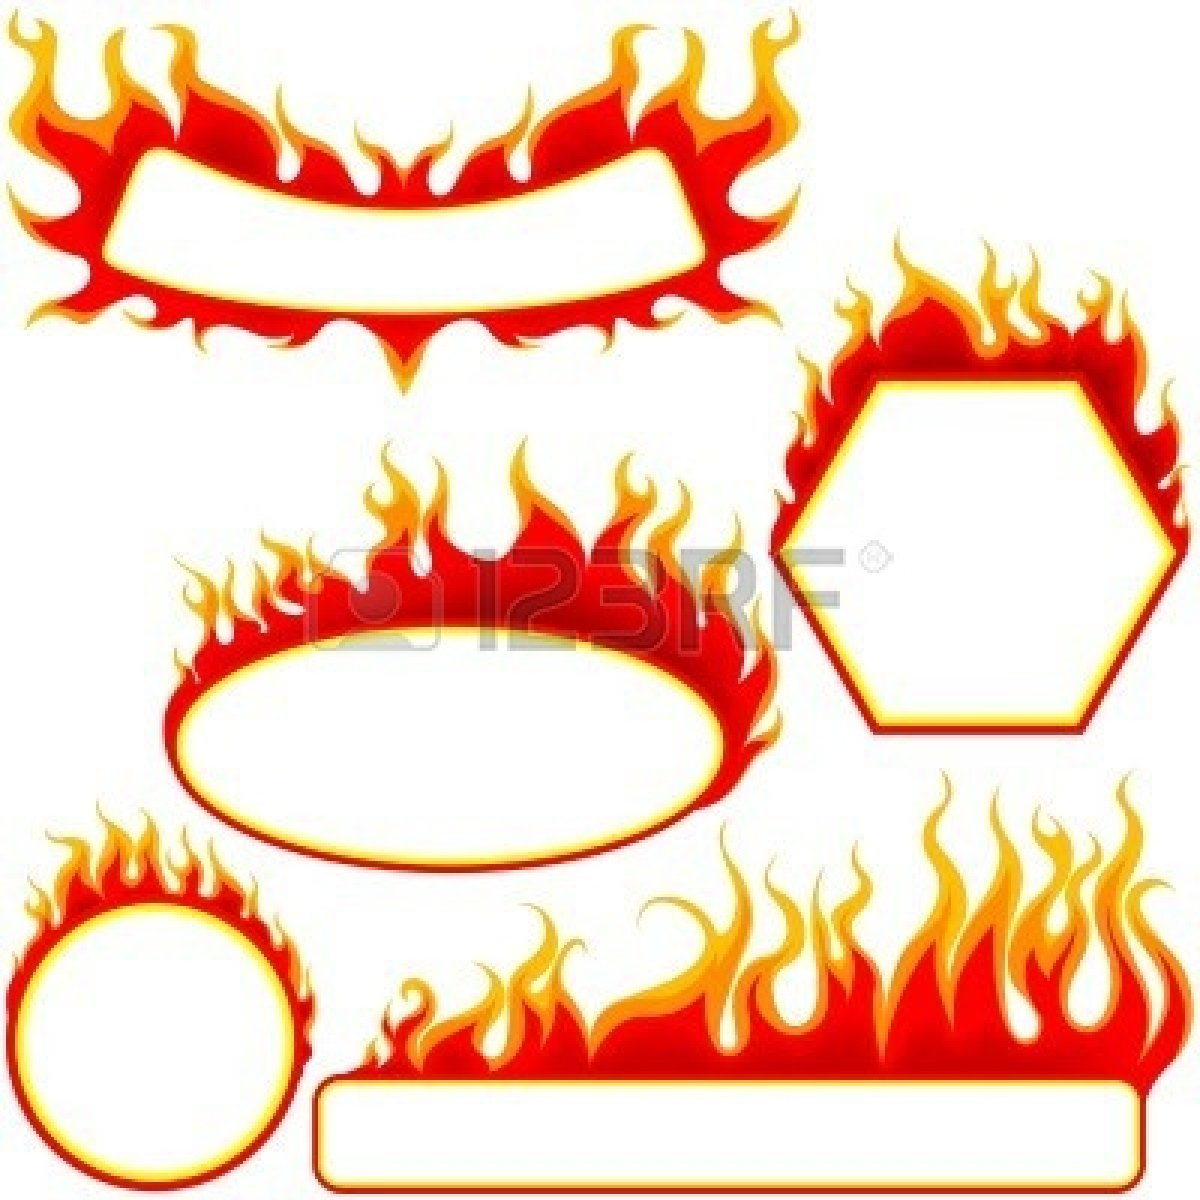 Fire frame clipart clipart royalty free library Fire Border   Free download best Fire Border on ClipArtMag.com clipart royalty free library